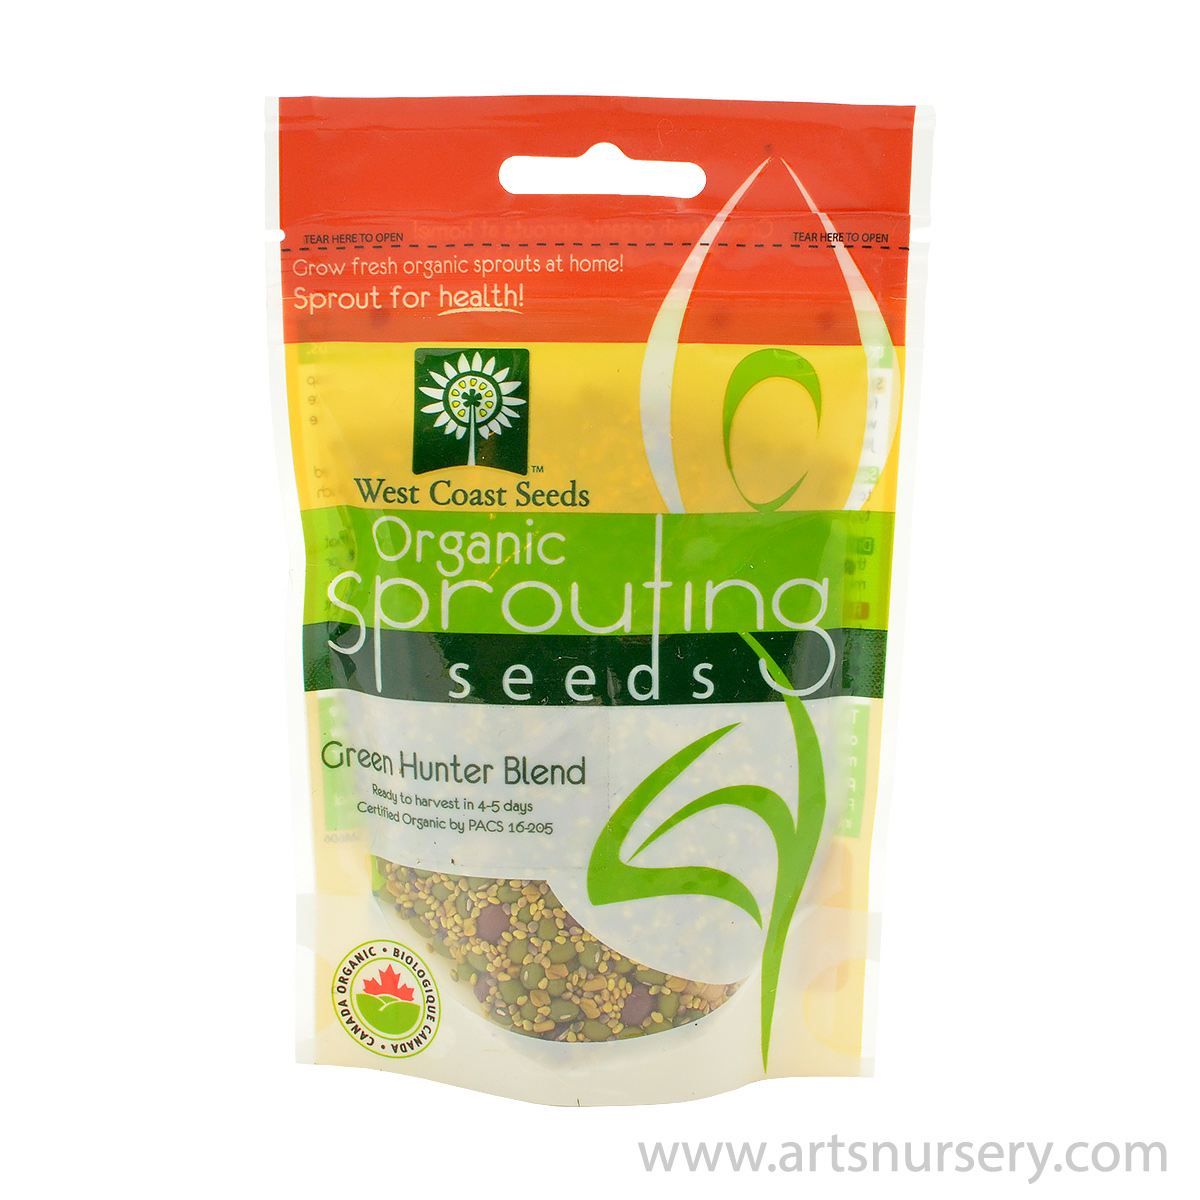 Green Hunter Blend Organic Sprouting Seeds